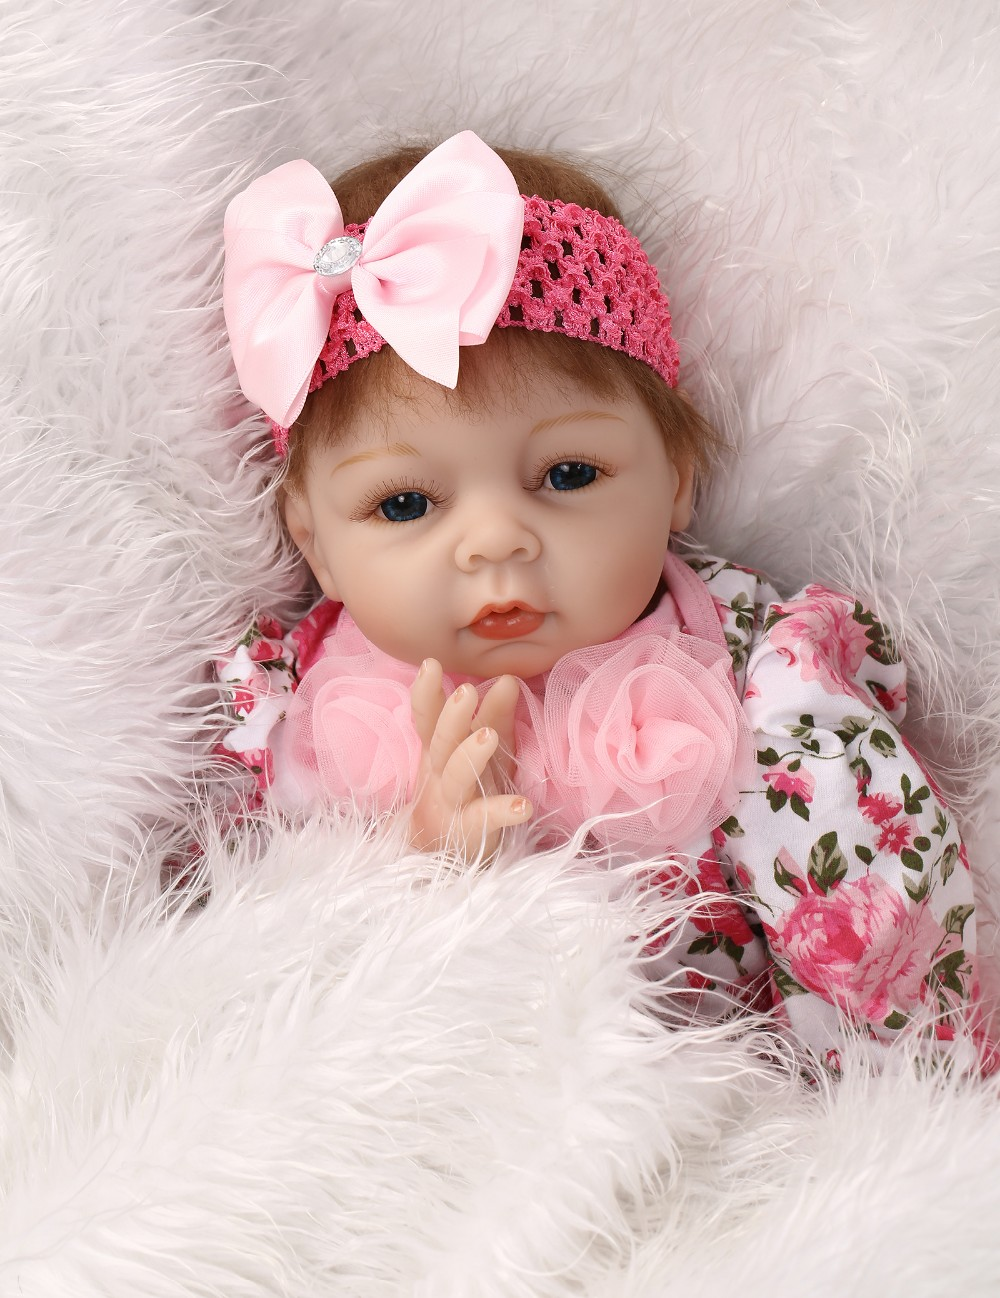 55cm Silicone reborn baby dolls toys for girl simulation soft newborn baby doll child  present gifts early education bedtime toy newborn silicone reborn dolls baby doll toy girls birthday gift present for child early education bedtime poupon reborn